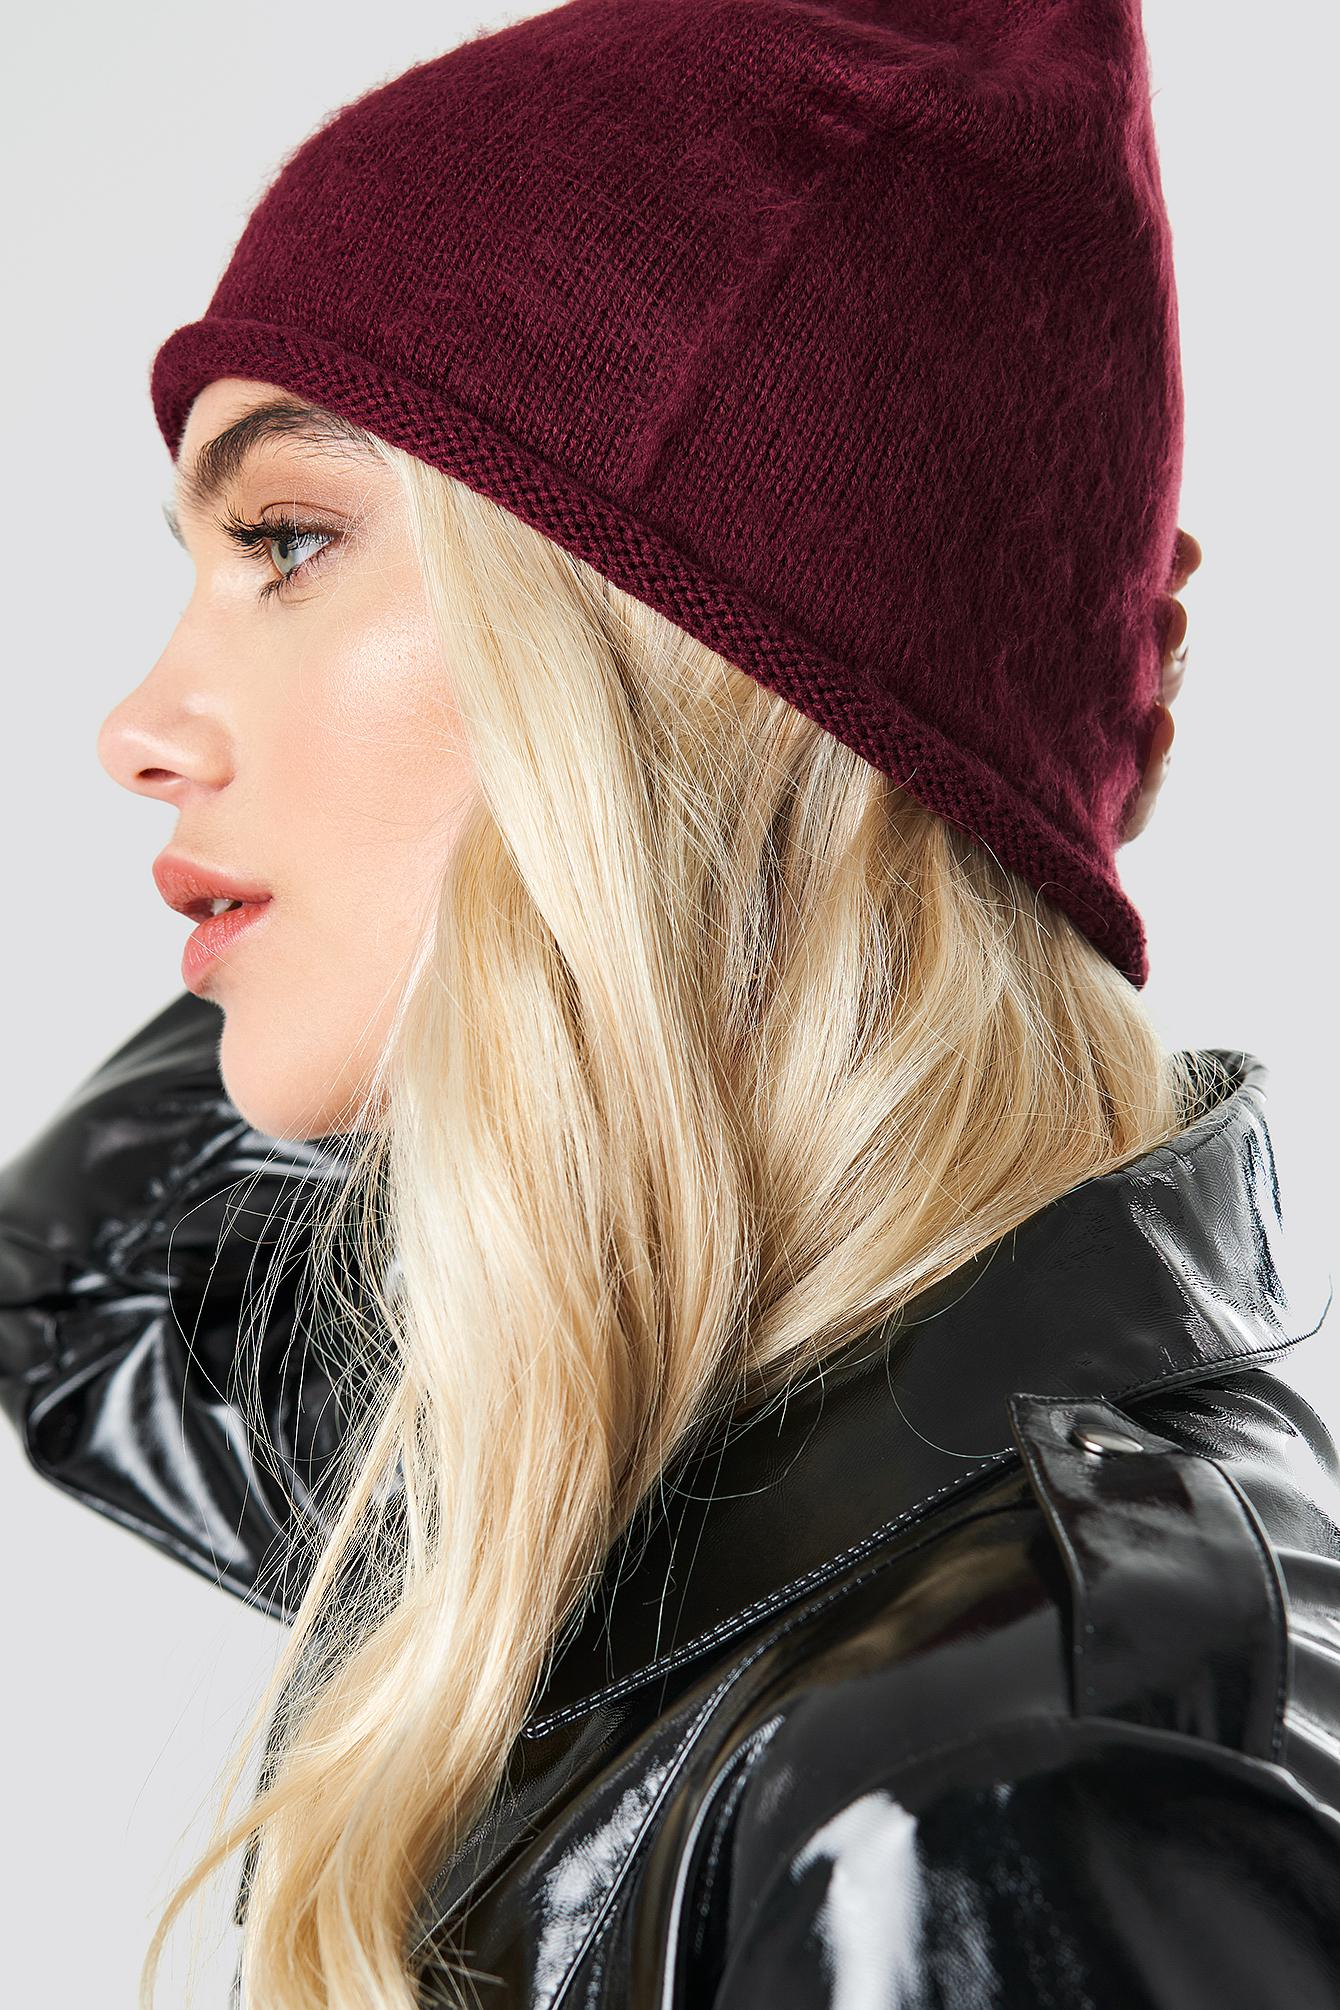 Lyst - Rut Circle Savanna Roll Up Beanie Wine Red in Red 380499a3cf20